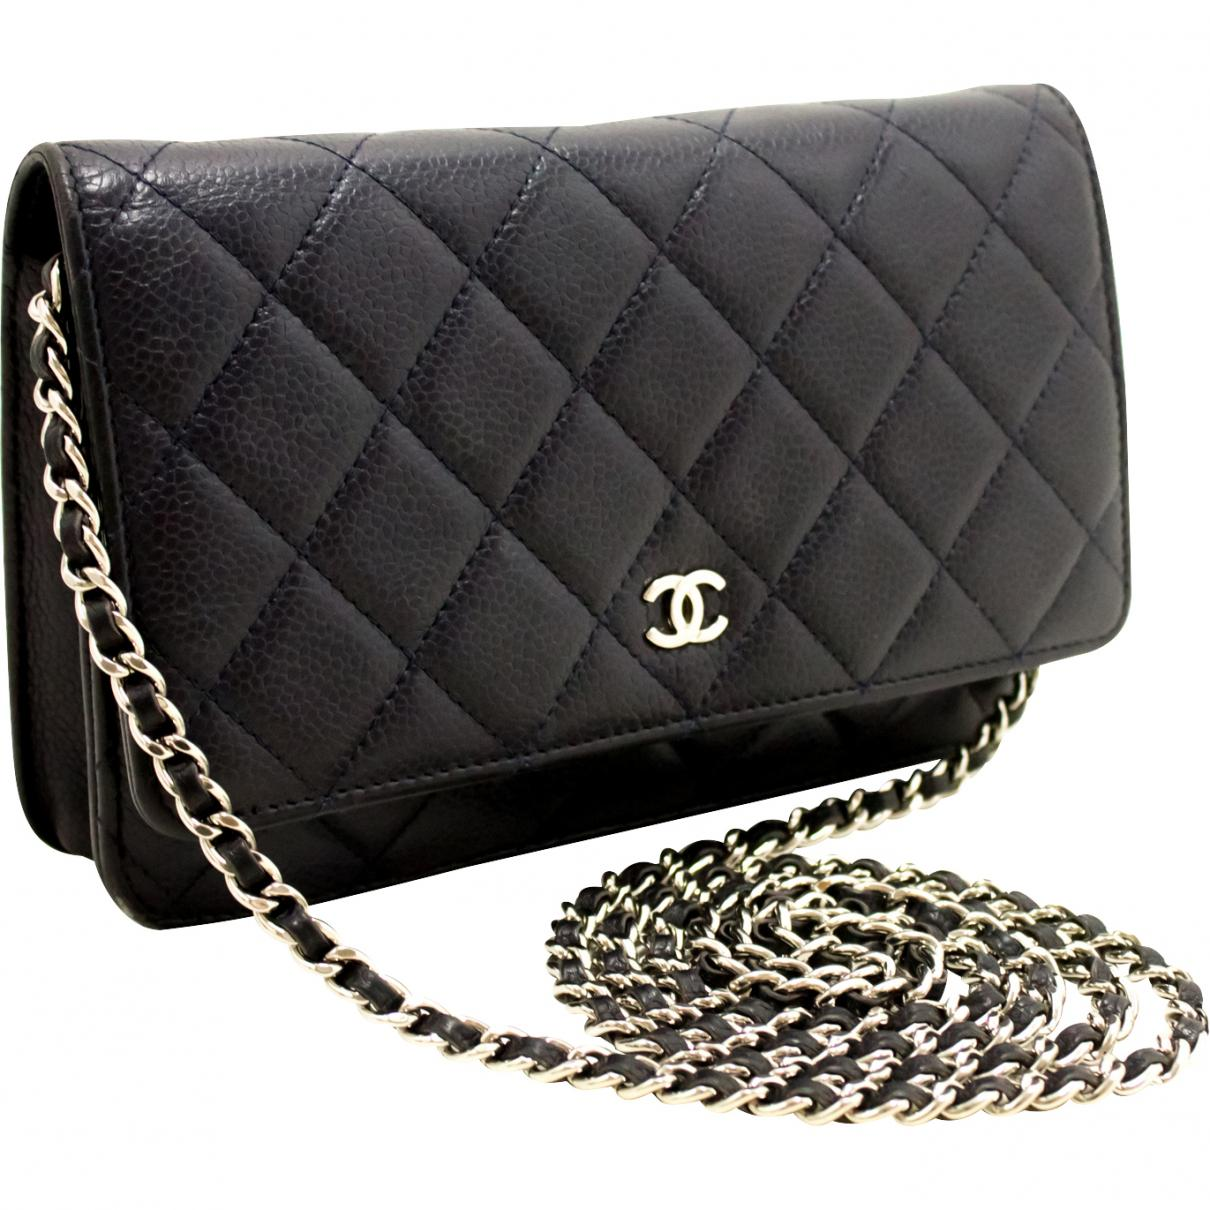 9030d7ab57e5 Chanel - Blue Pre-owned Wallet On Chain Navy Leather Handbags - Lyst. View  fullscreen